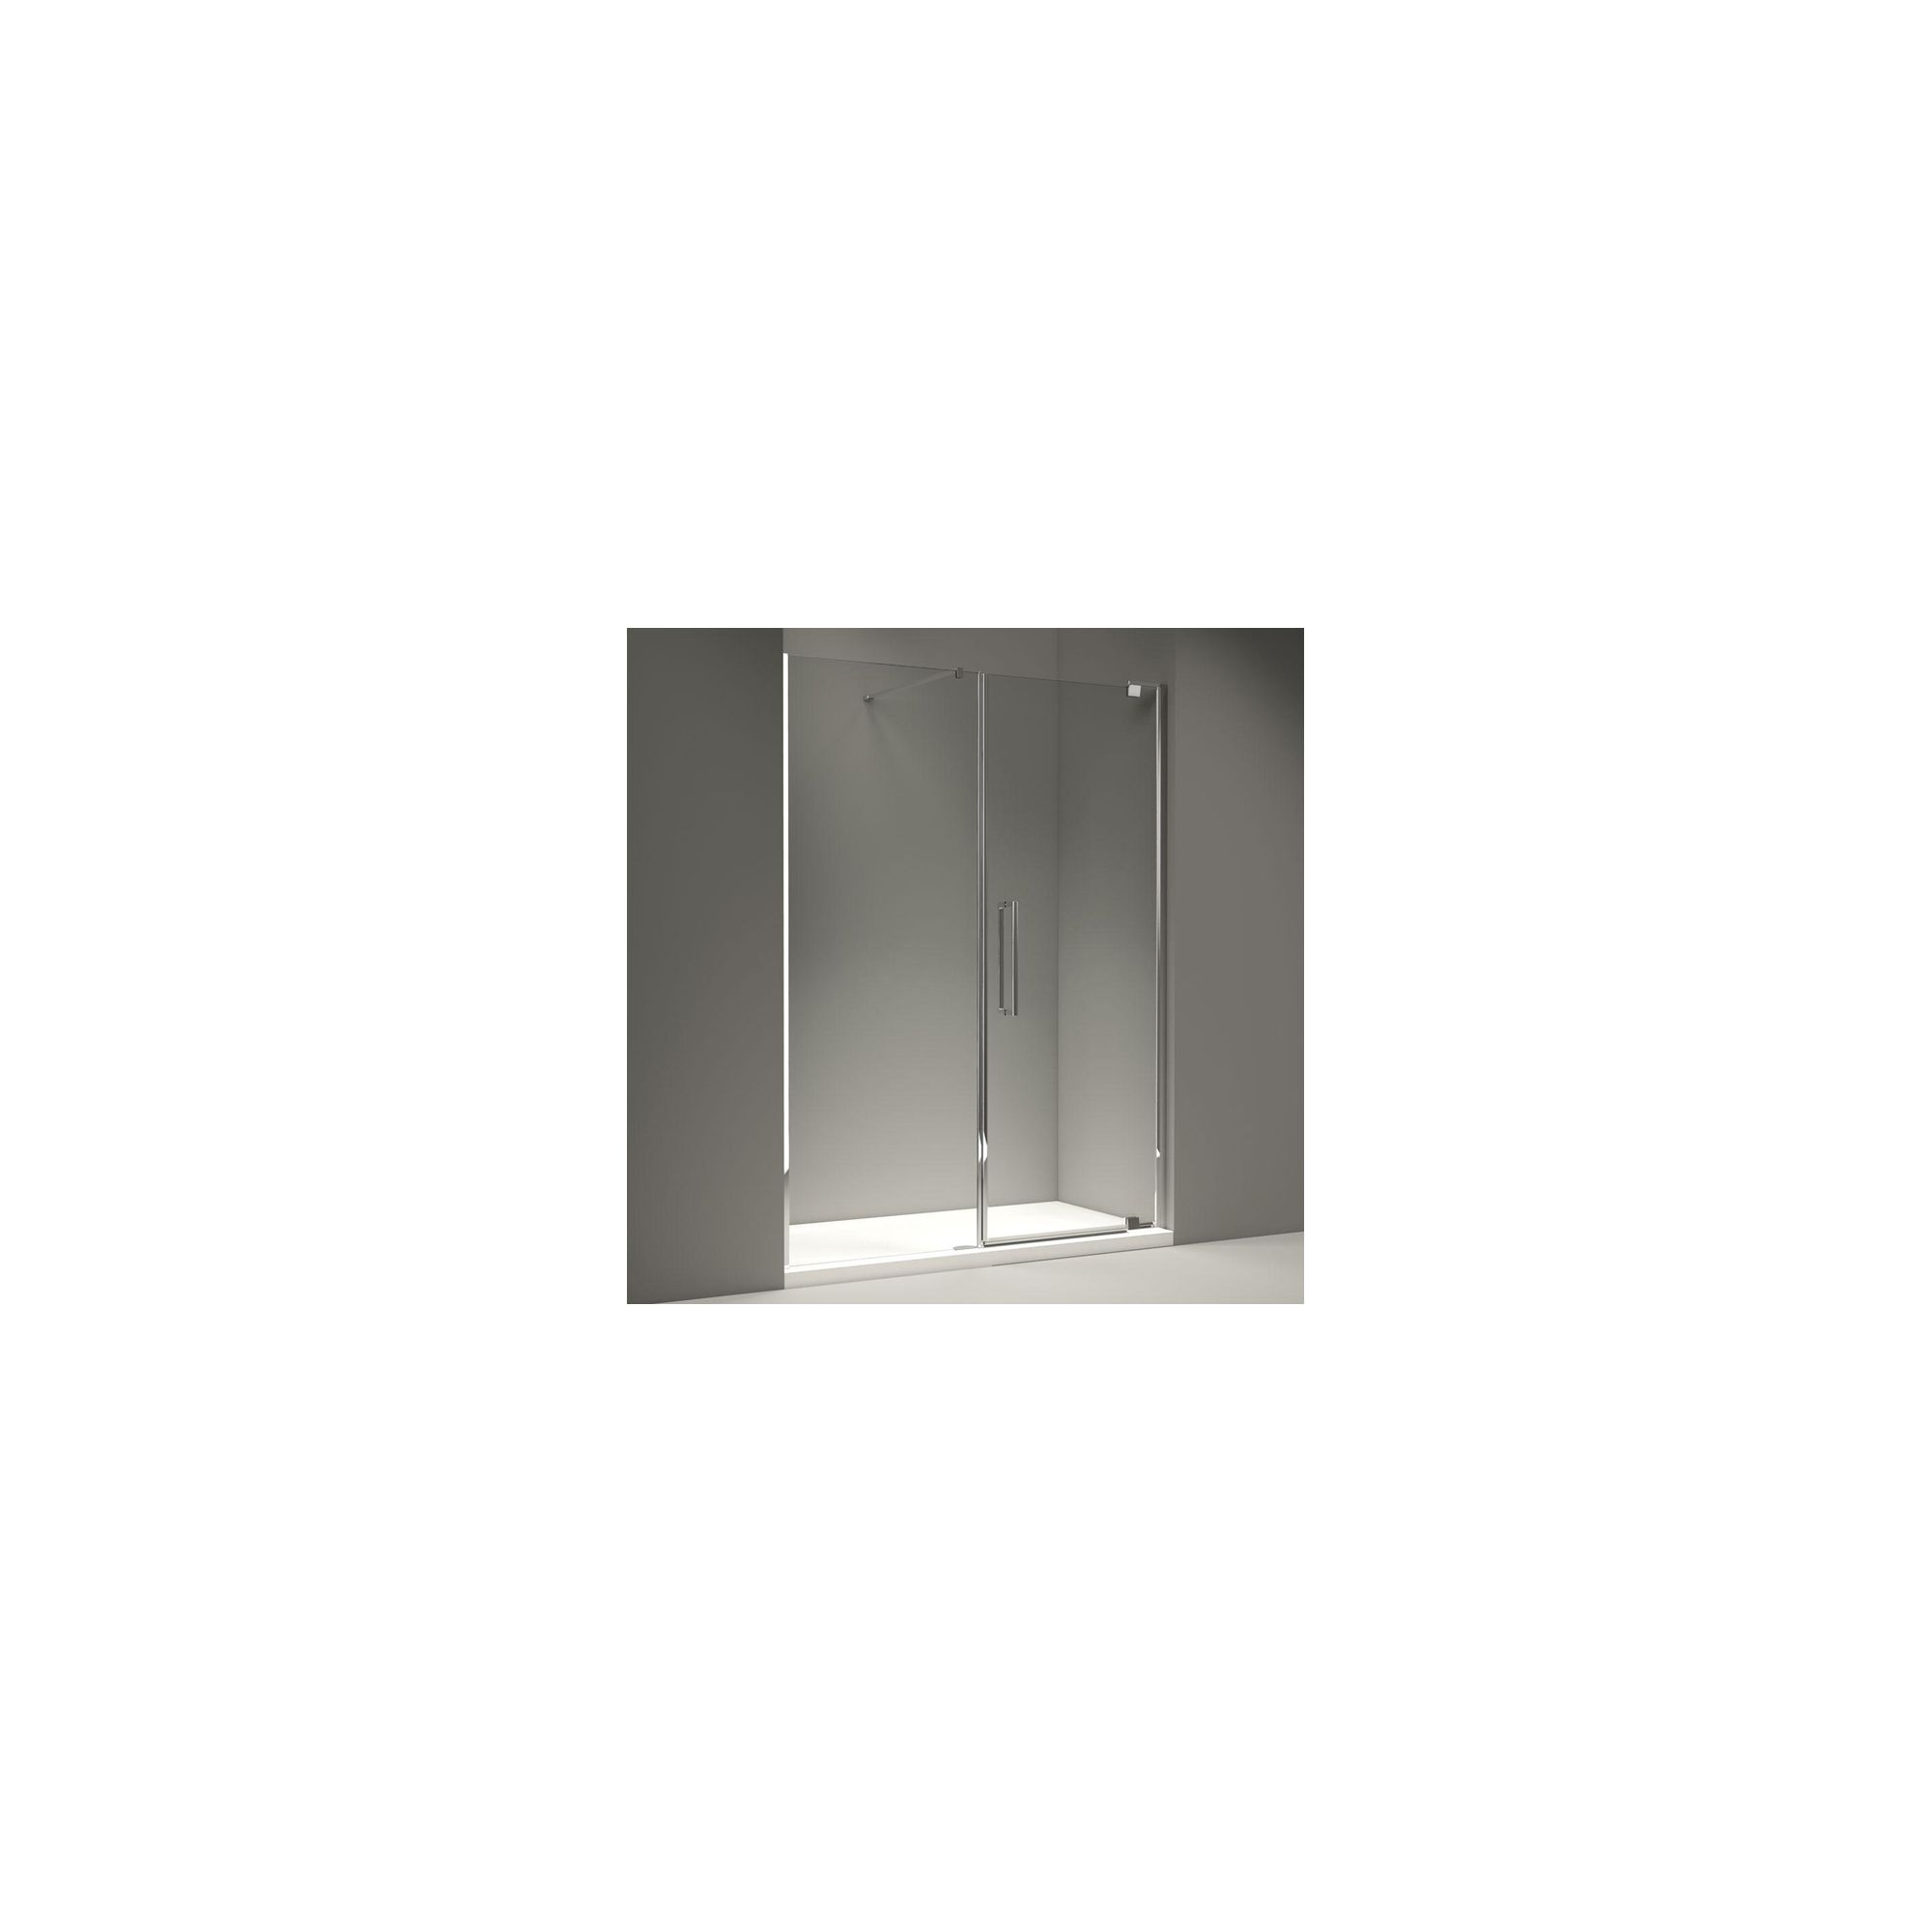 Merlyn Series 10 Inline Pivot Shower Door, 1500mm Wide, 10mm Clear Glass at Tescos Direct